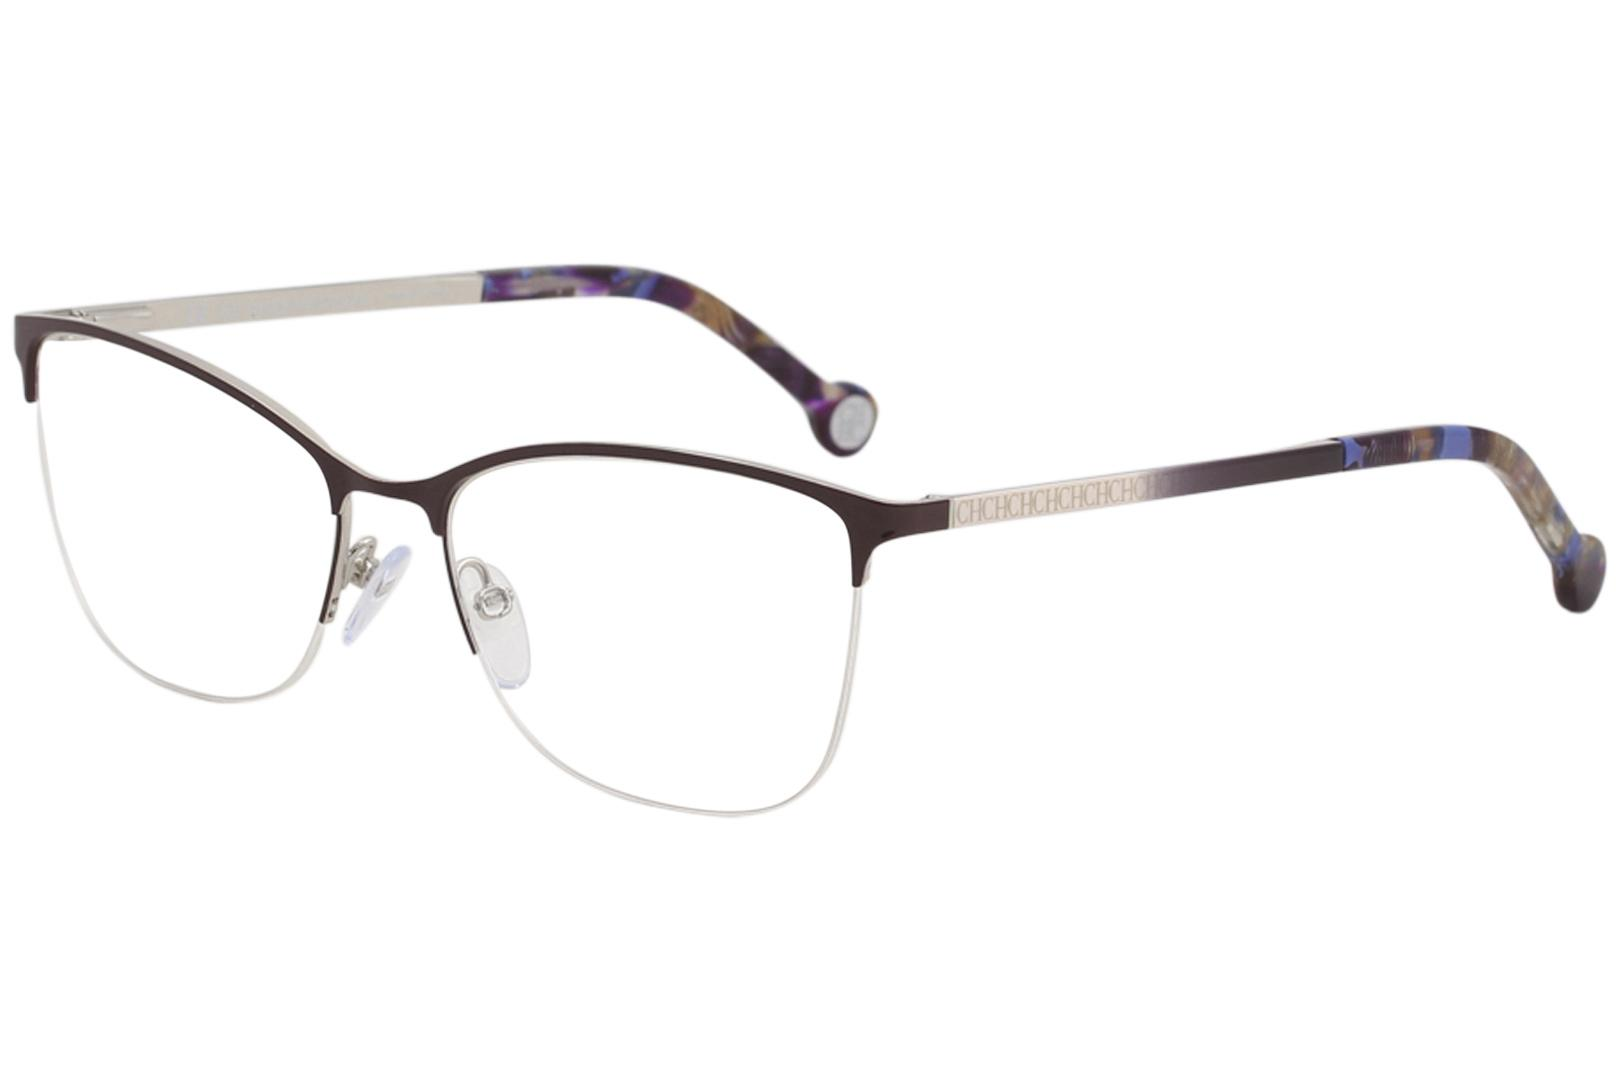 Image of CH Carolina Herrera Eyeglasses VHE108K VHE/108K 0SDA Burgundy Optical Frame 54mm - Burgundy   0SDA - Lens 54 Bridge 16 B 40 ED 61 Temple 135mm